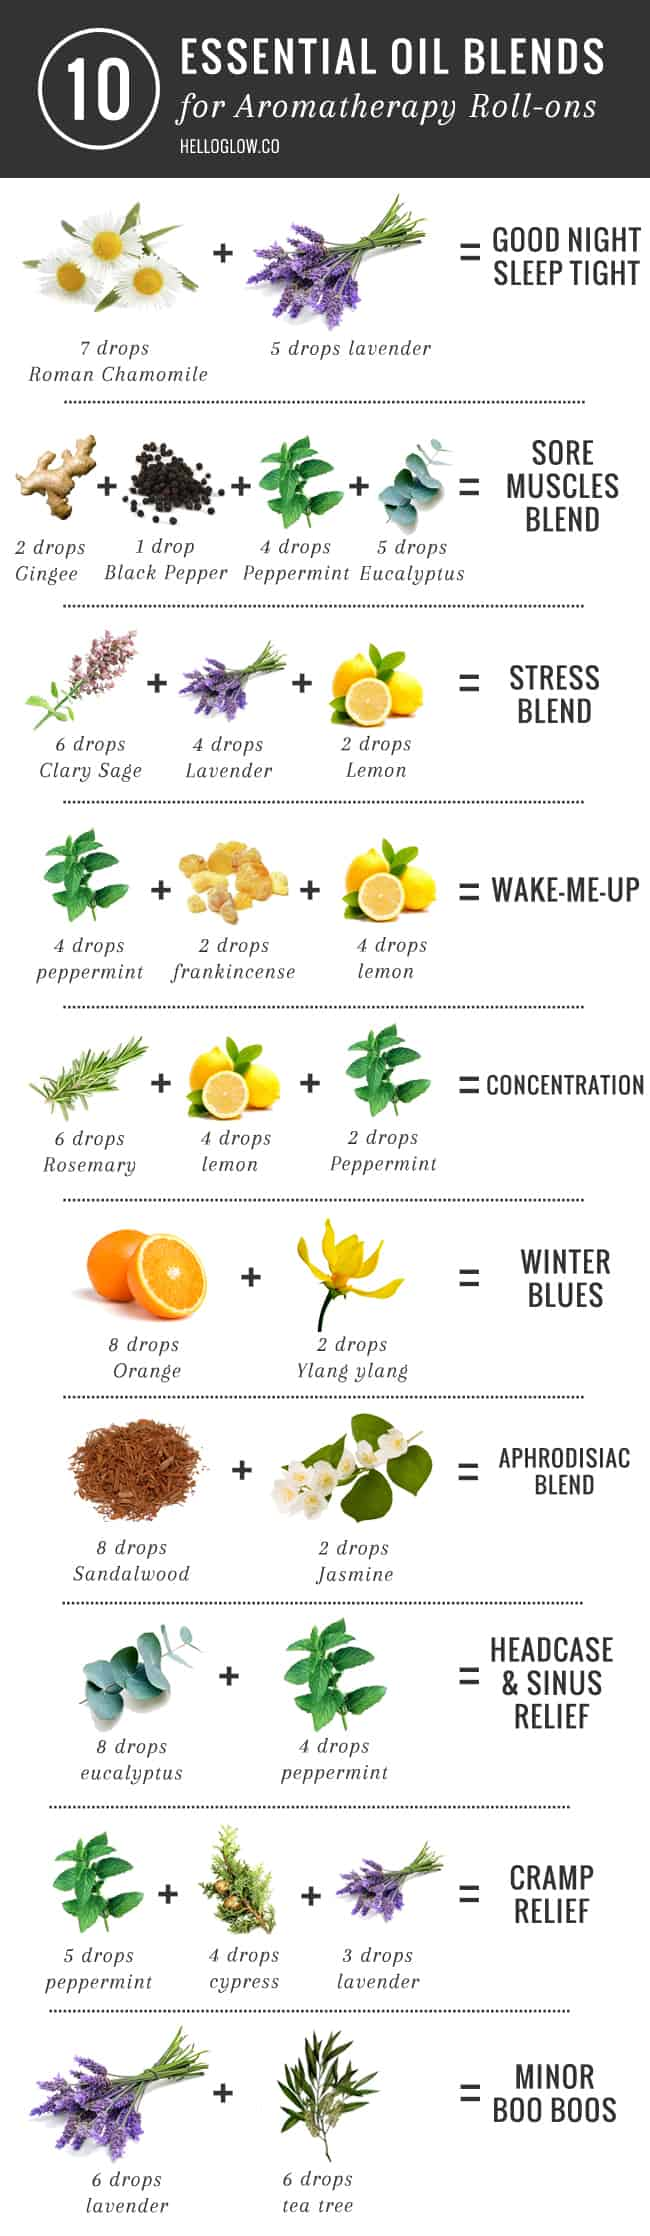 10 Aromatherapy Blends for Roll ons